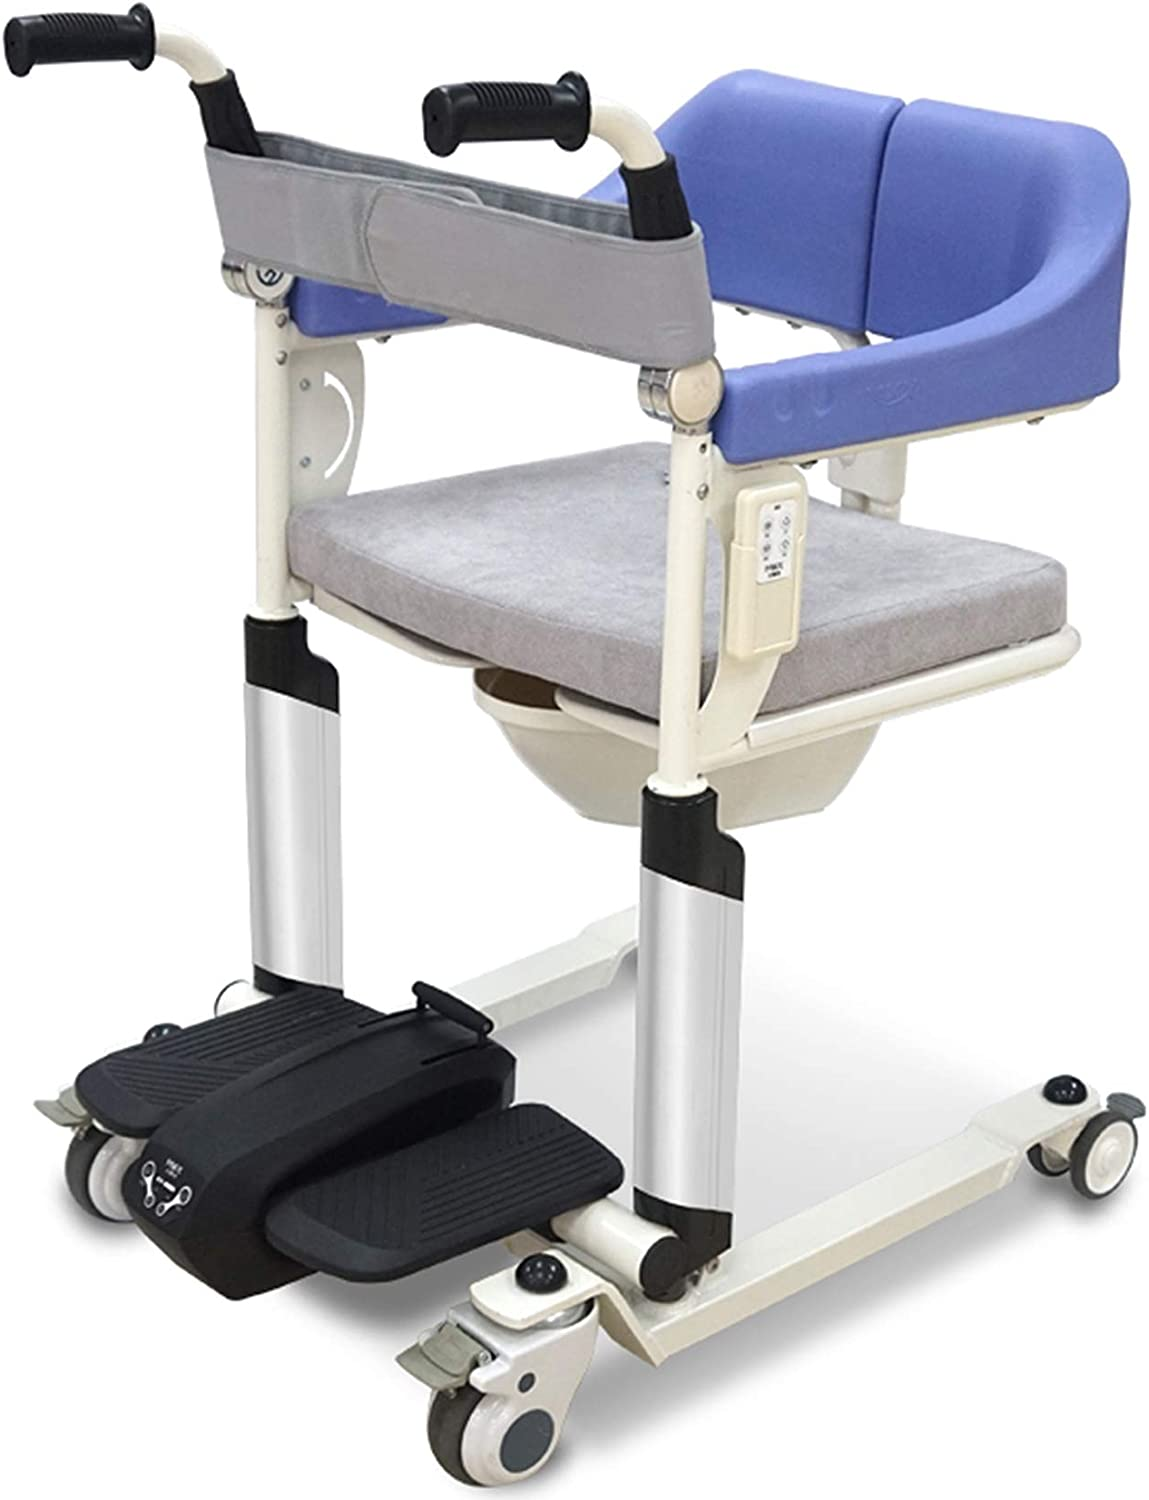 Gycdwjh Multifunctional Wheeled Bathroom Chair,for Patient Transfer Electric Lift Chair,with Folding Armrests,Suitable for Nursing Home Rehabilitation Wheelchair,Electric Version